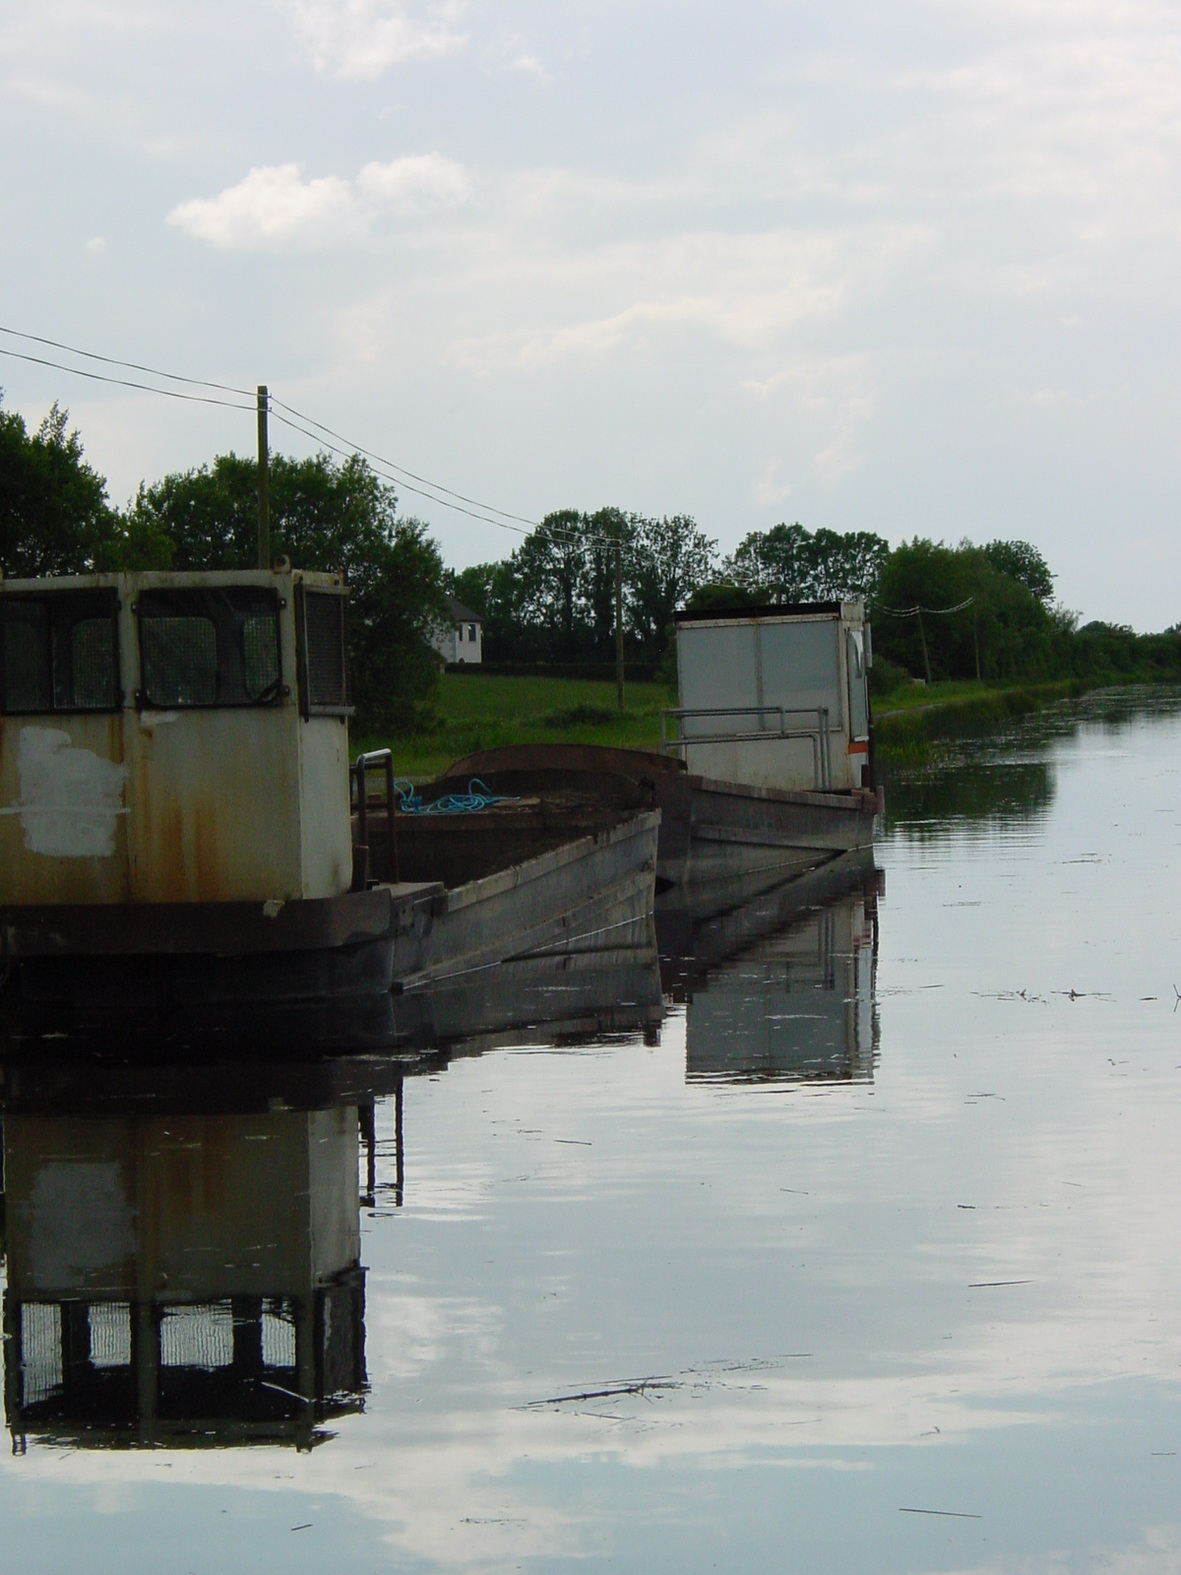 Two small barges